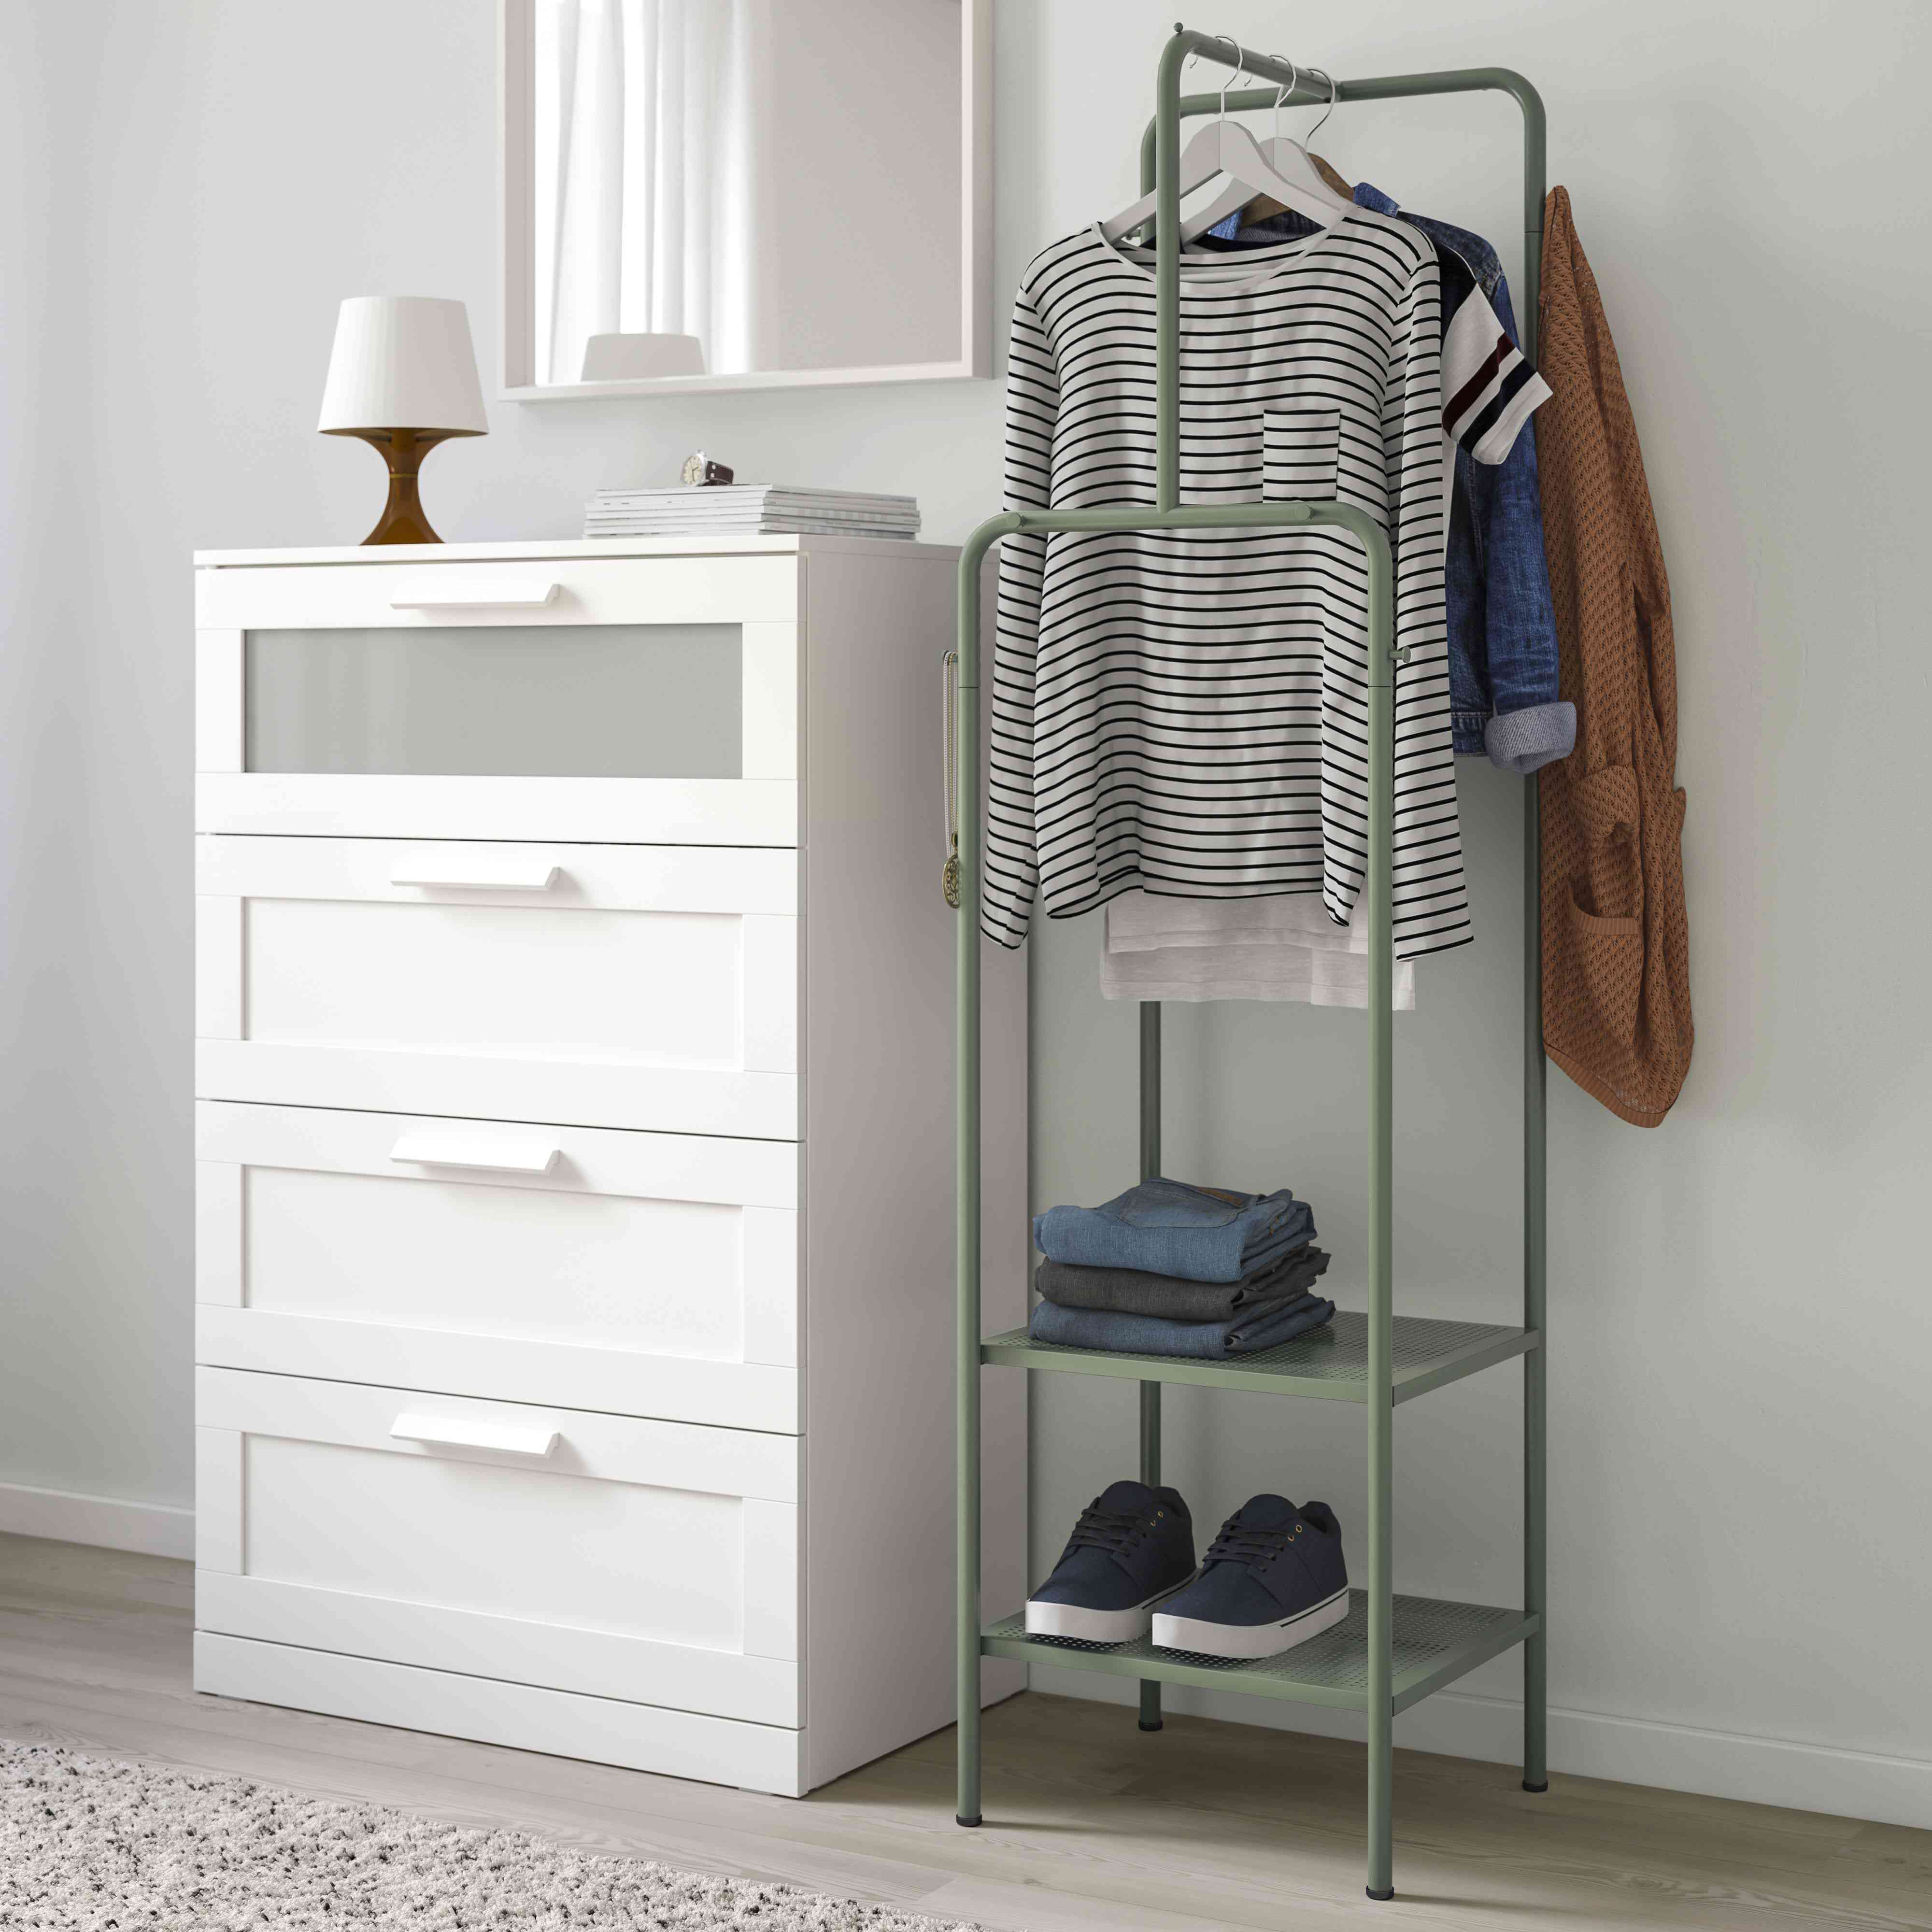 IKEA NIKKEBY Clothes Rack, Gray-Green